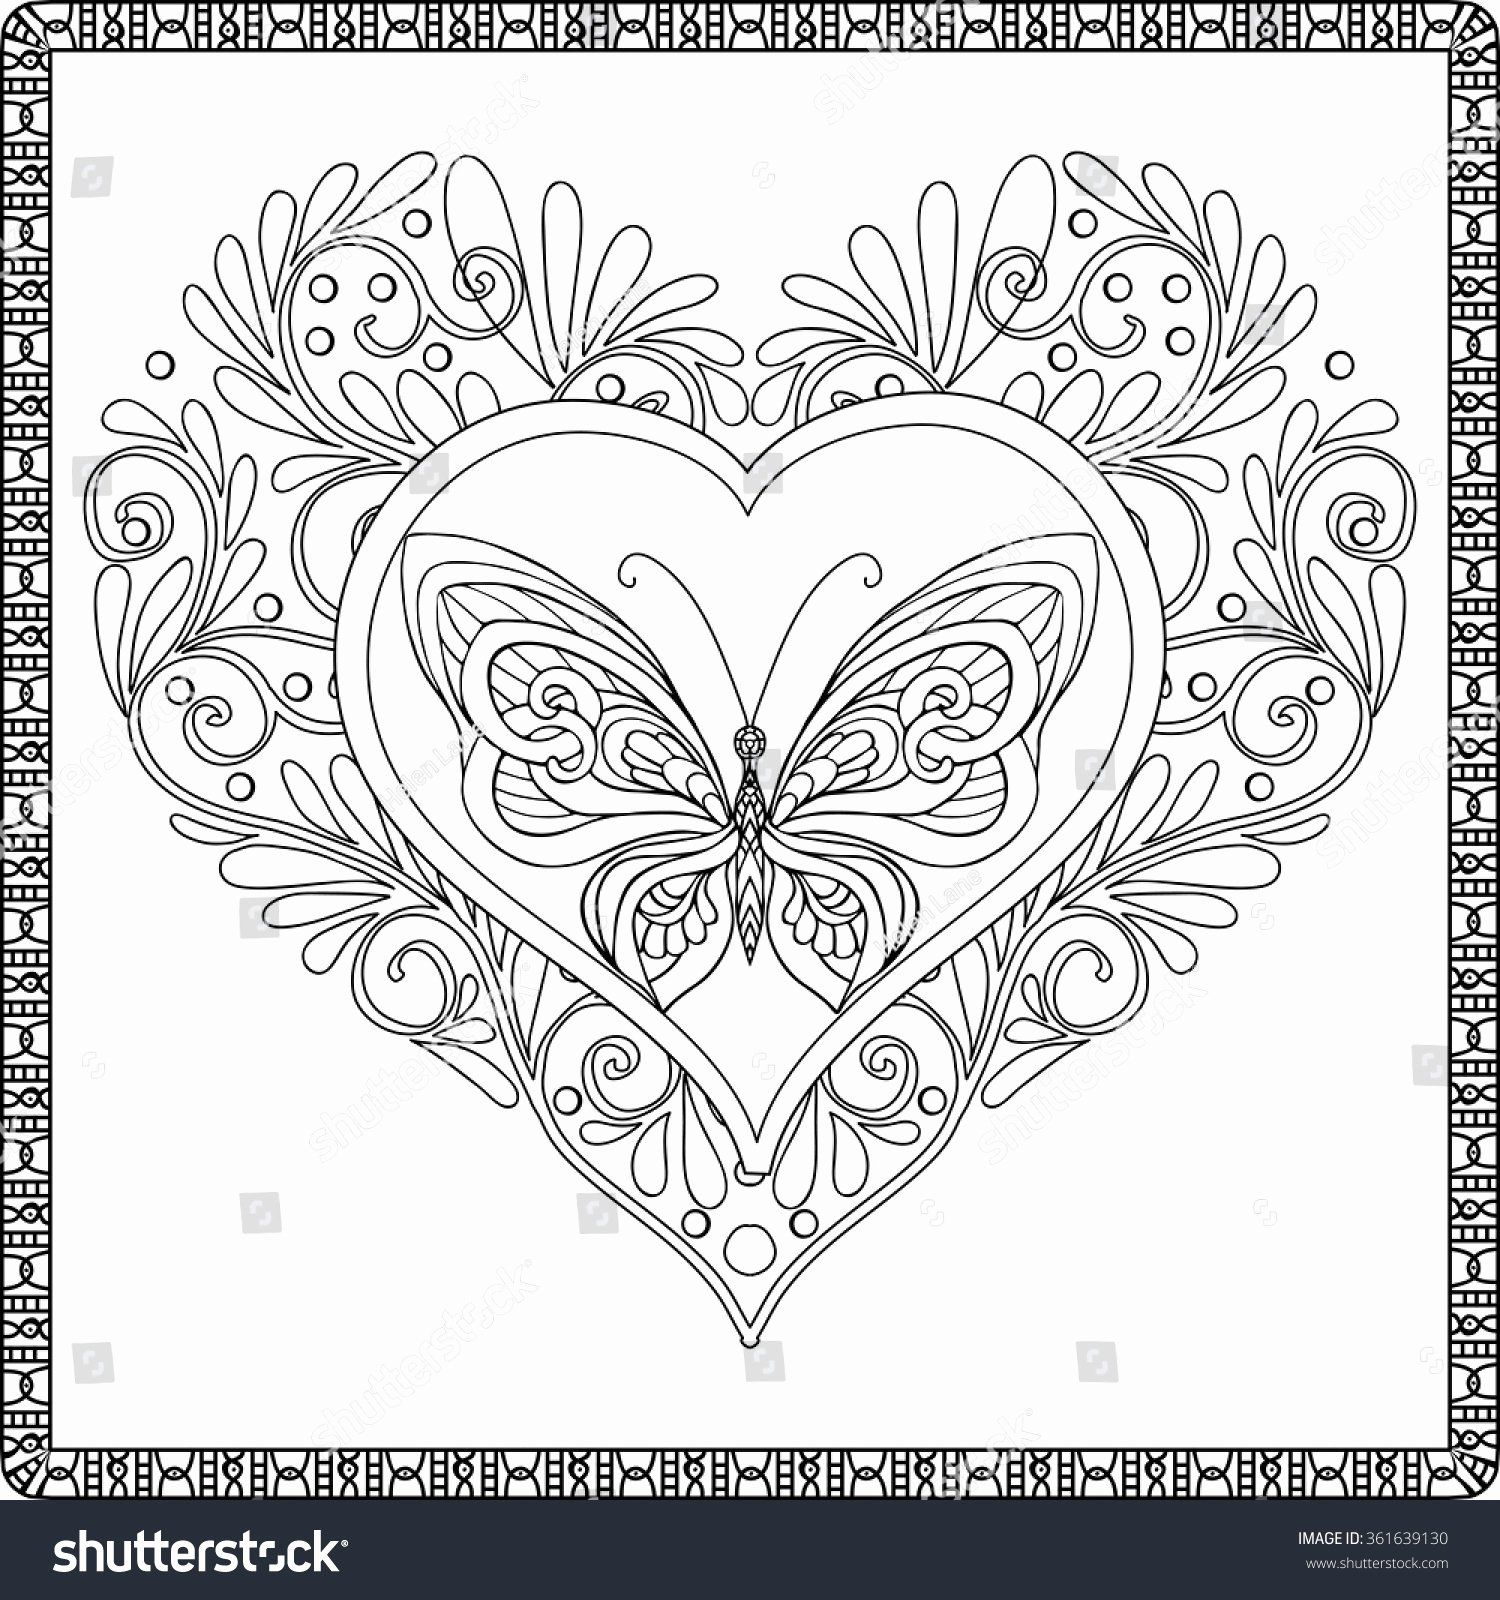 52 Hearts Outline Clip Art Hand Drawn Romance Vector